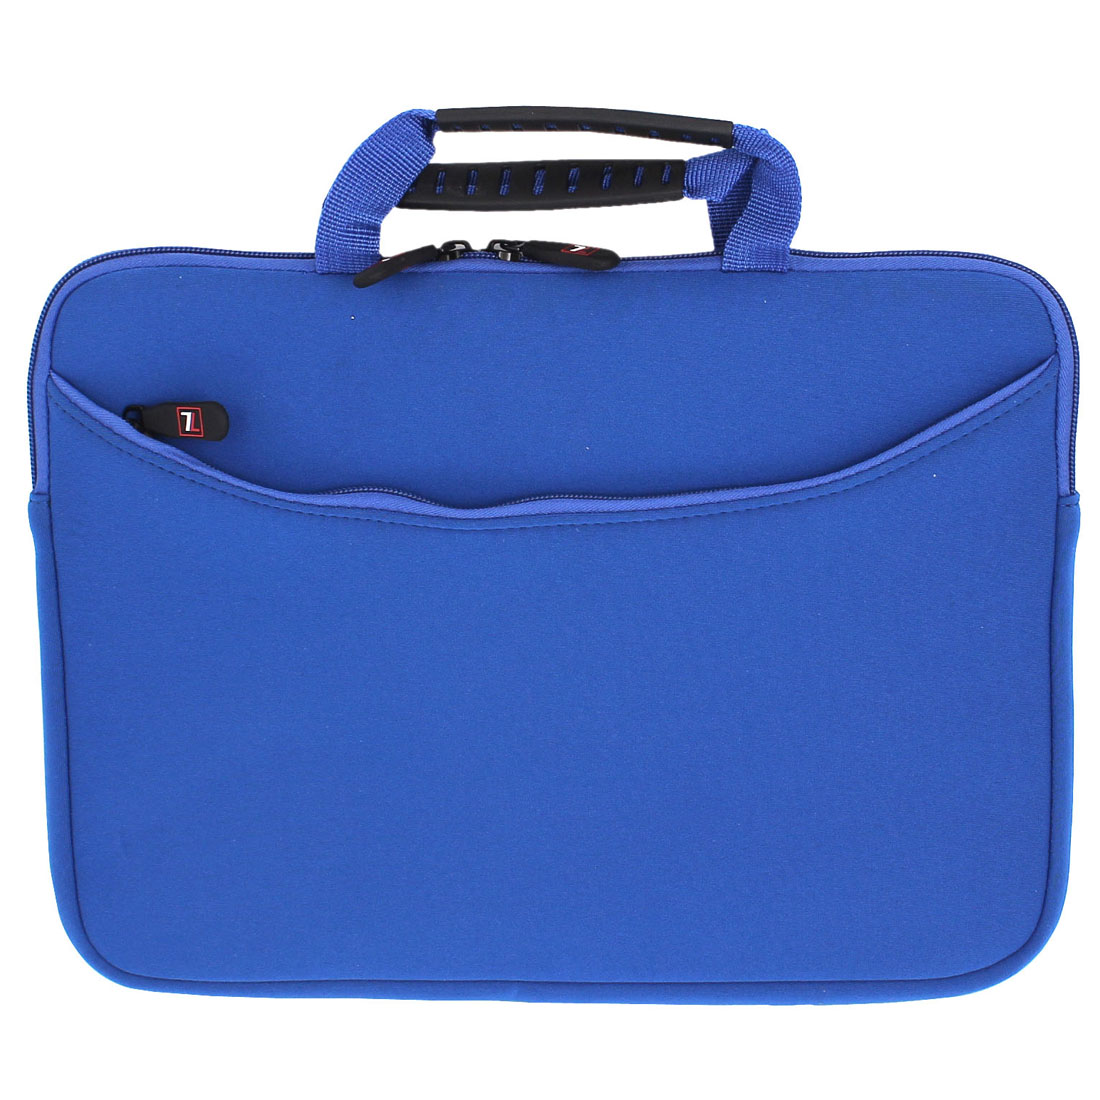 "12.1"" Nylon Zipper PC Laptop Notebook Handle Sleeve Case Bag Dark Blue"